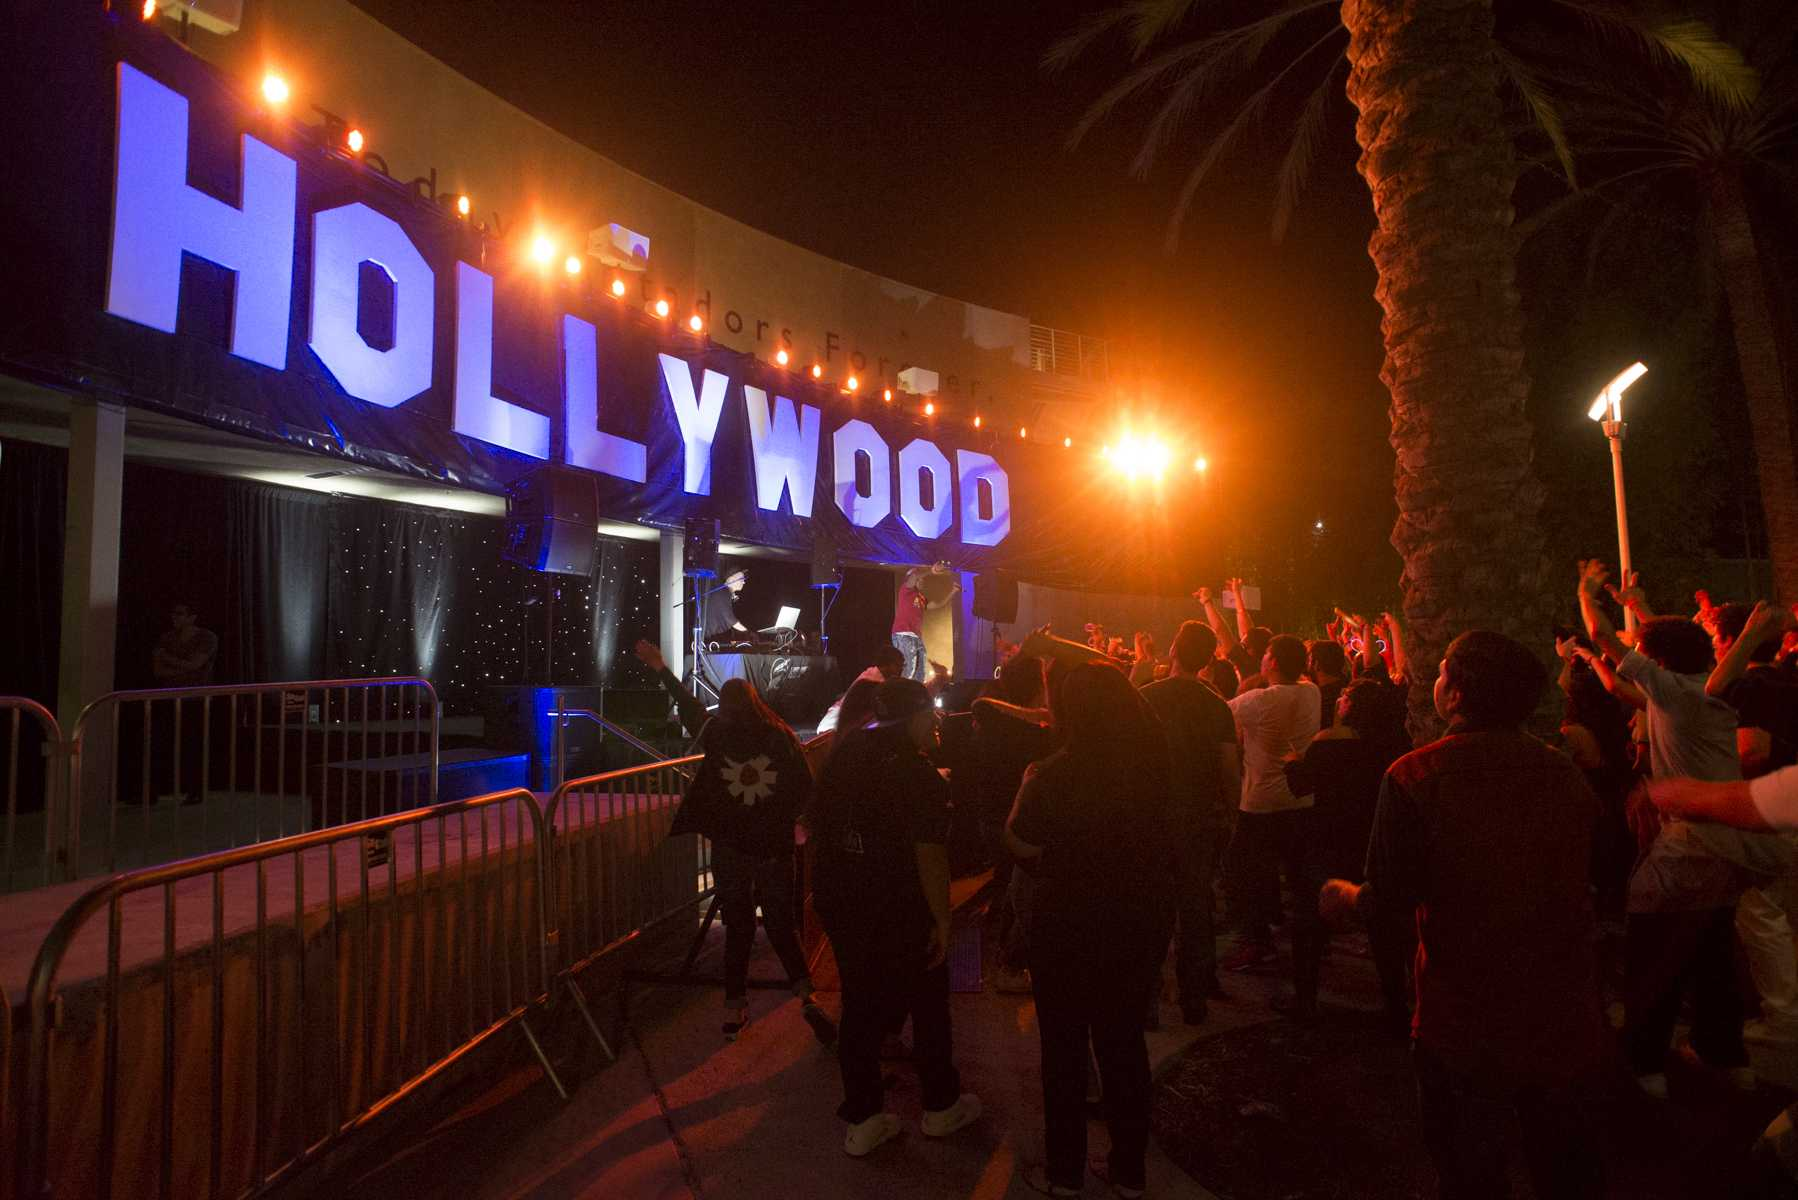 Hollywood sign in the Plasa Del Sol during matador nights on the main event with a DJ playing dancing music for the crowd Photo credit: Alejandro Aranda